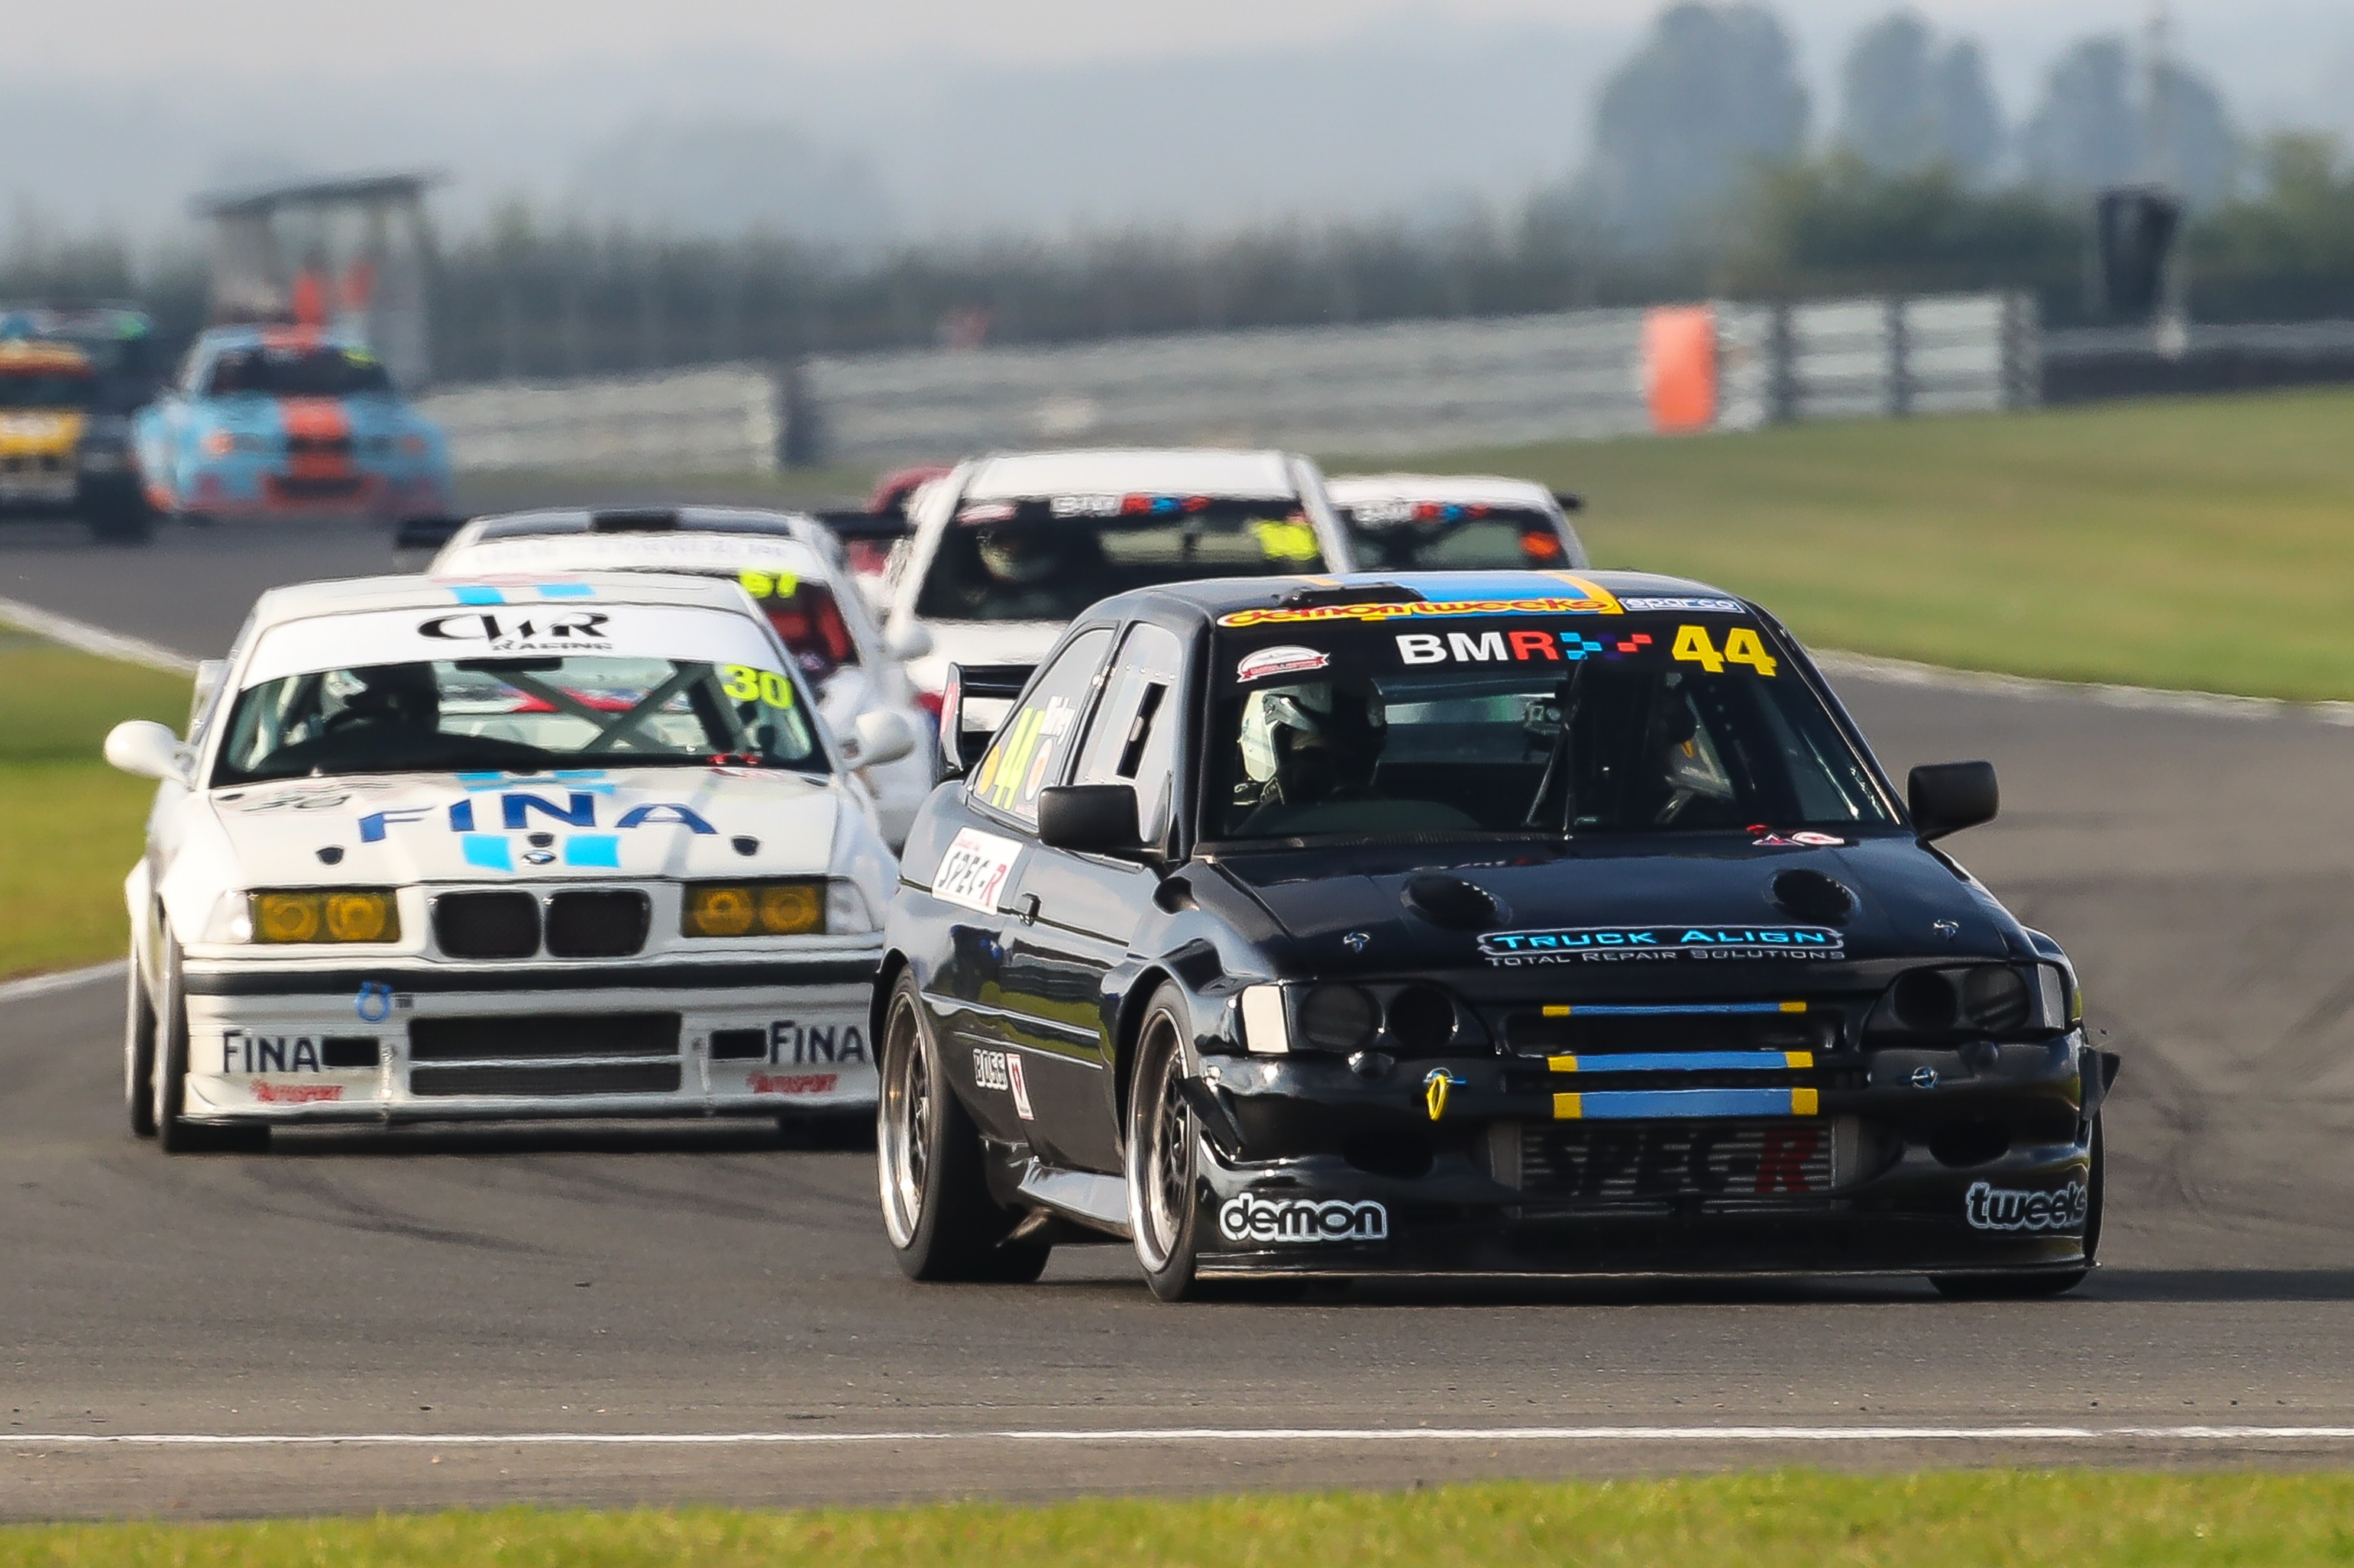 Victory for Birley in CMMC Super Saloons at Snetterton propelled him up to ninth